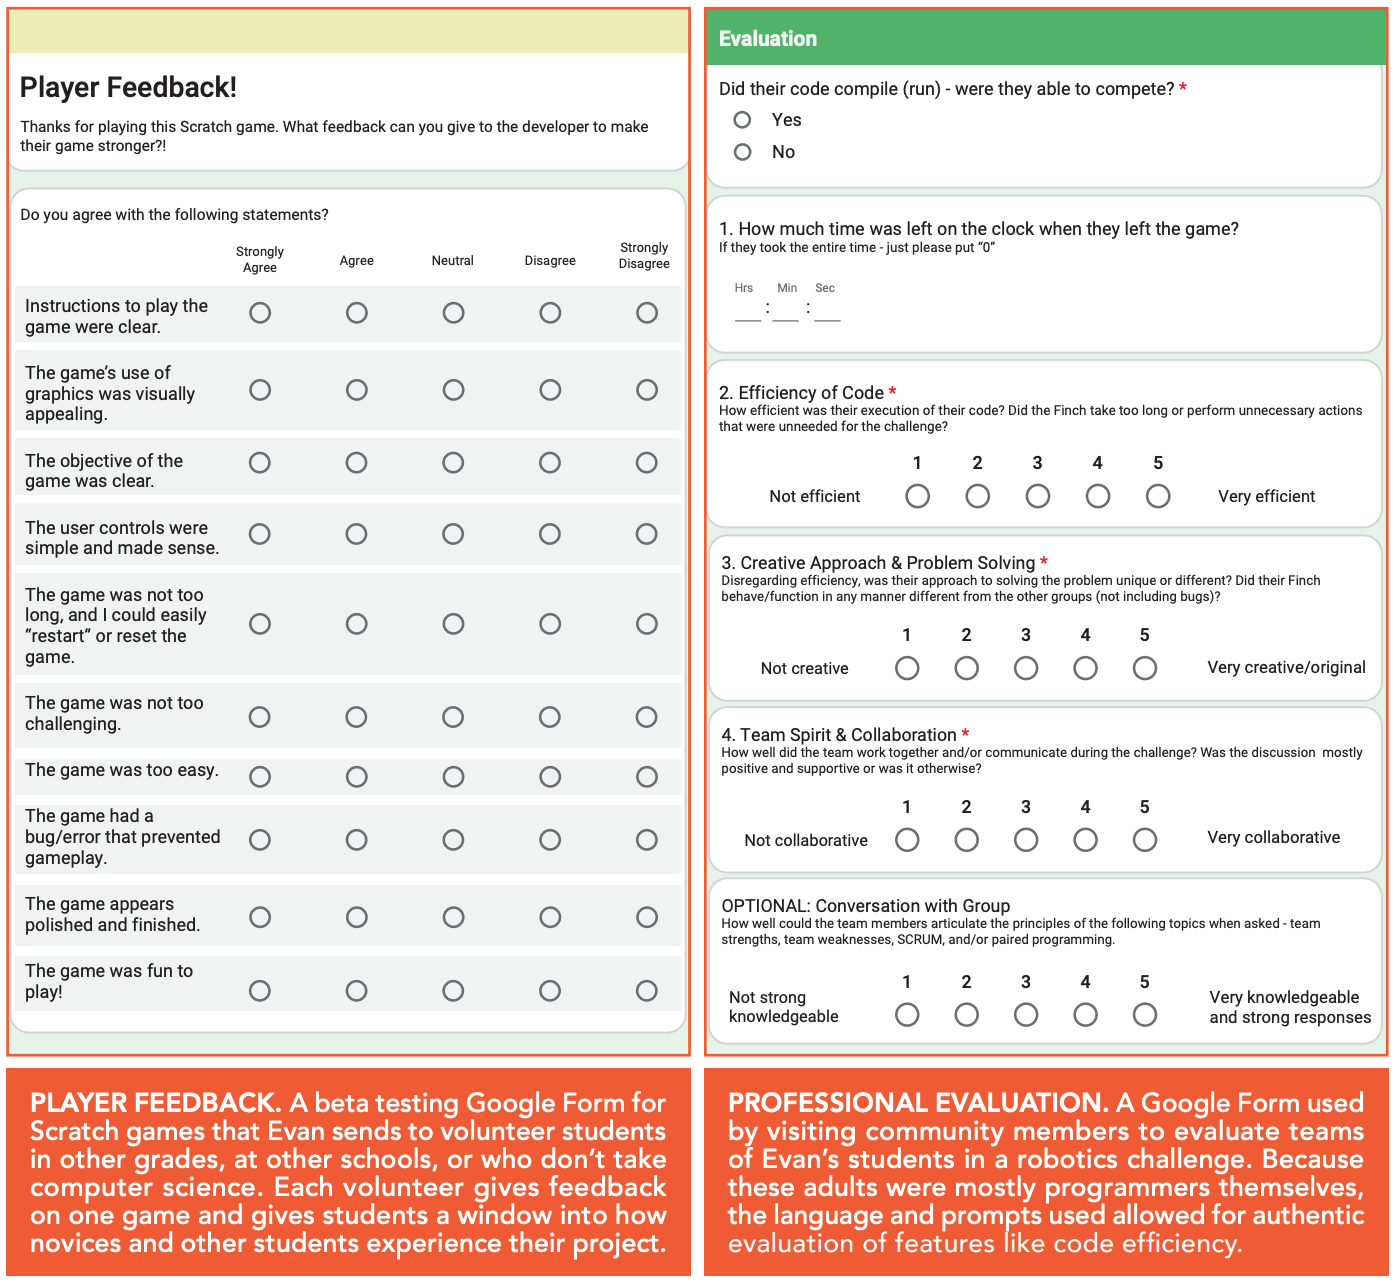 peer and community feedback forms